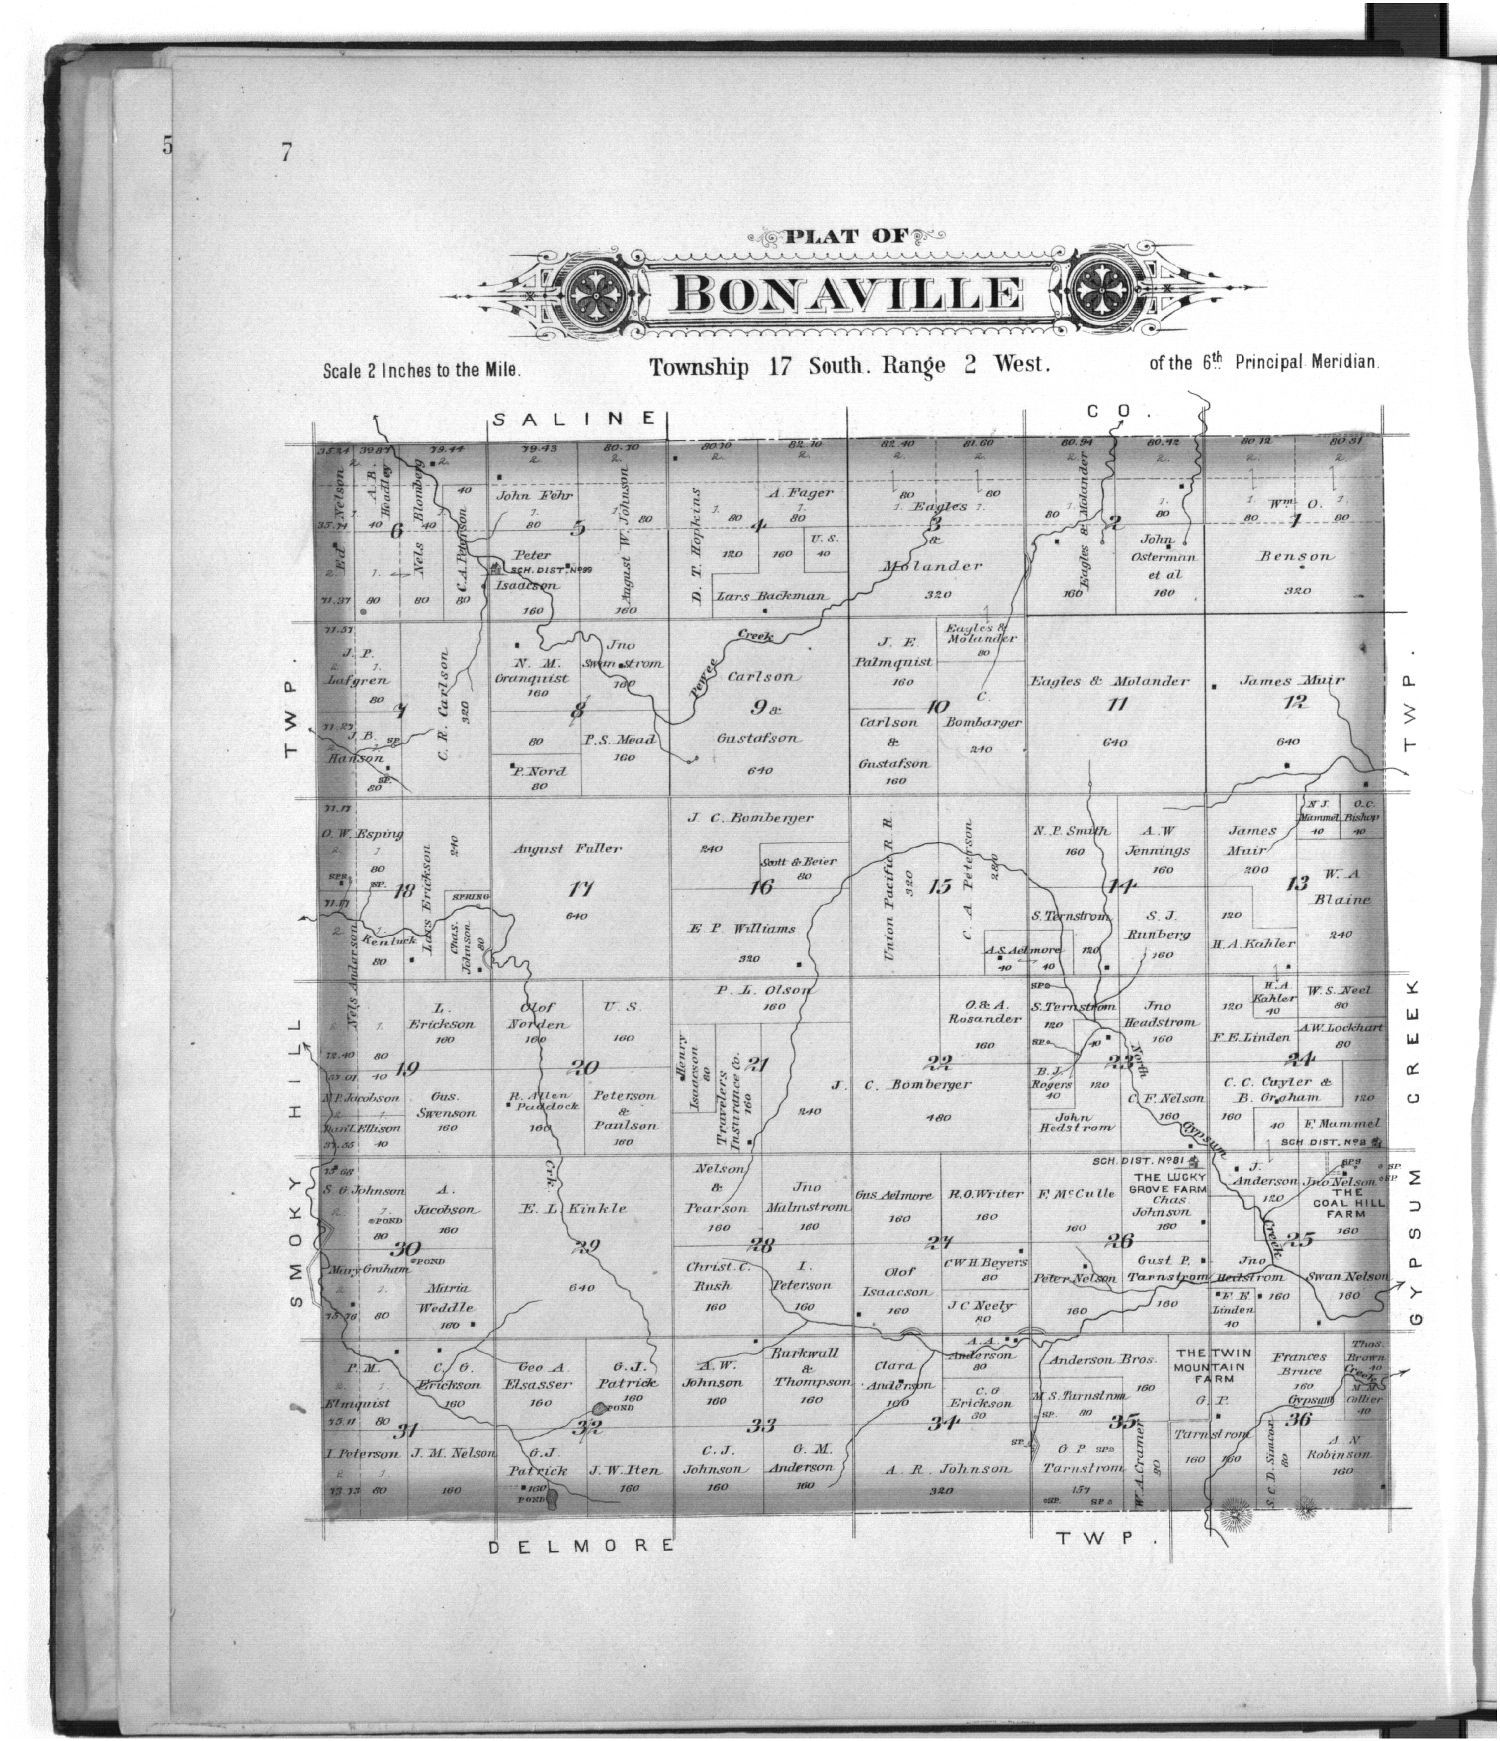 Plat book of McPherson County, Kansas - 7